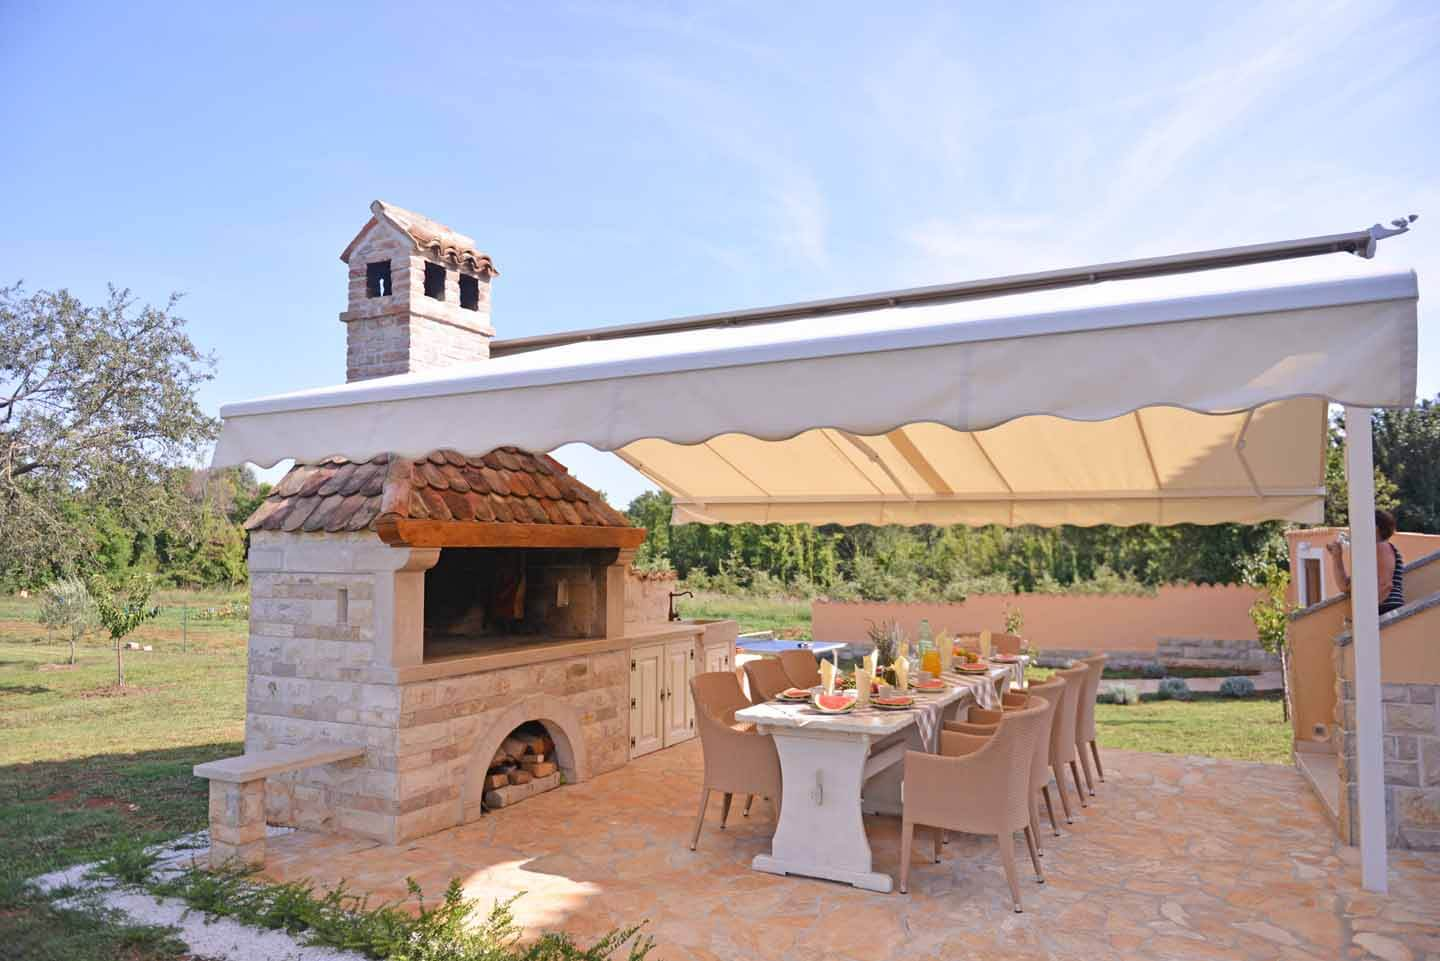 Covered dining terrace and summer kitchen barbecue